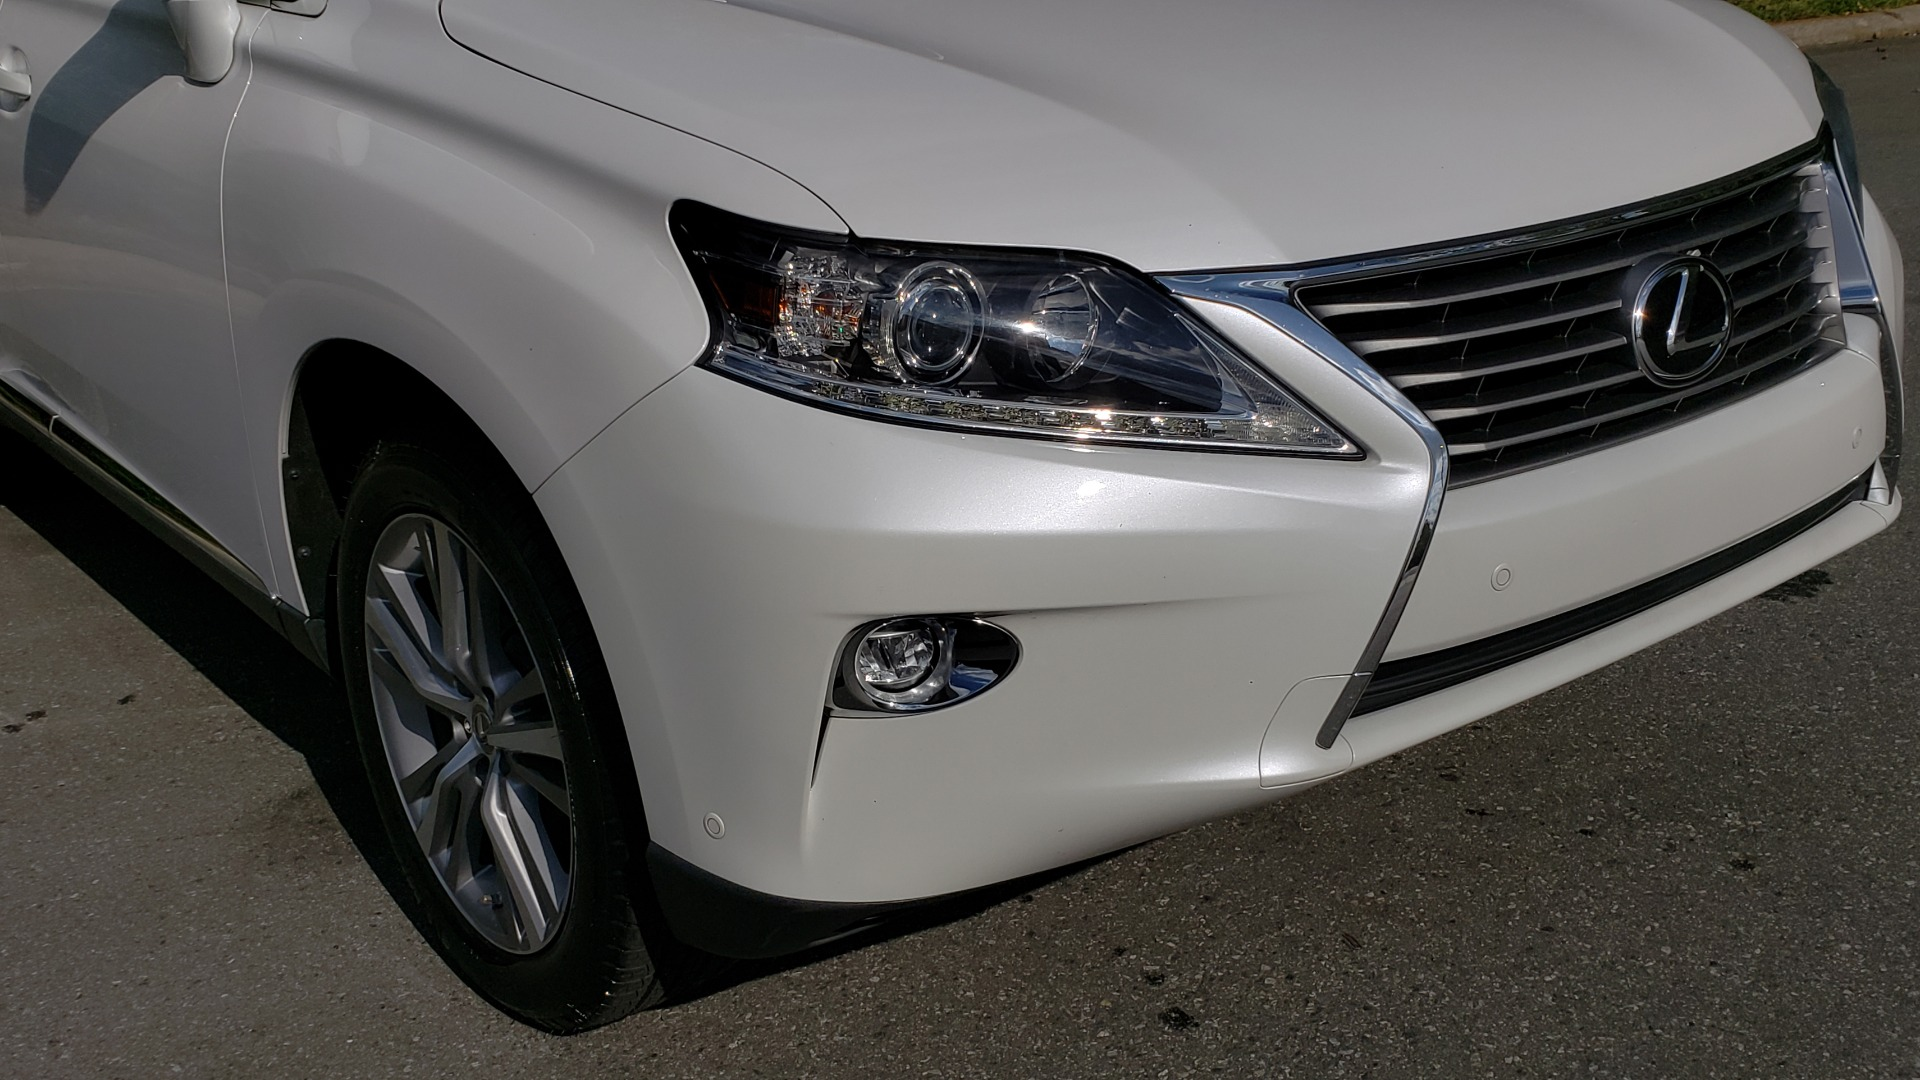 Used 2015 Lexus RX 350 PREMIUM PKG / COMFORT PKG / NAV / SUNROOF / BSM / TOWING for sale Sold at Formula Imports in Charlotte NC 28227 19